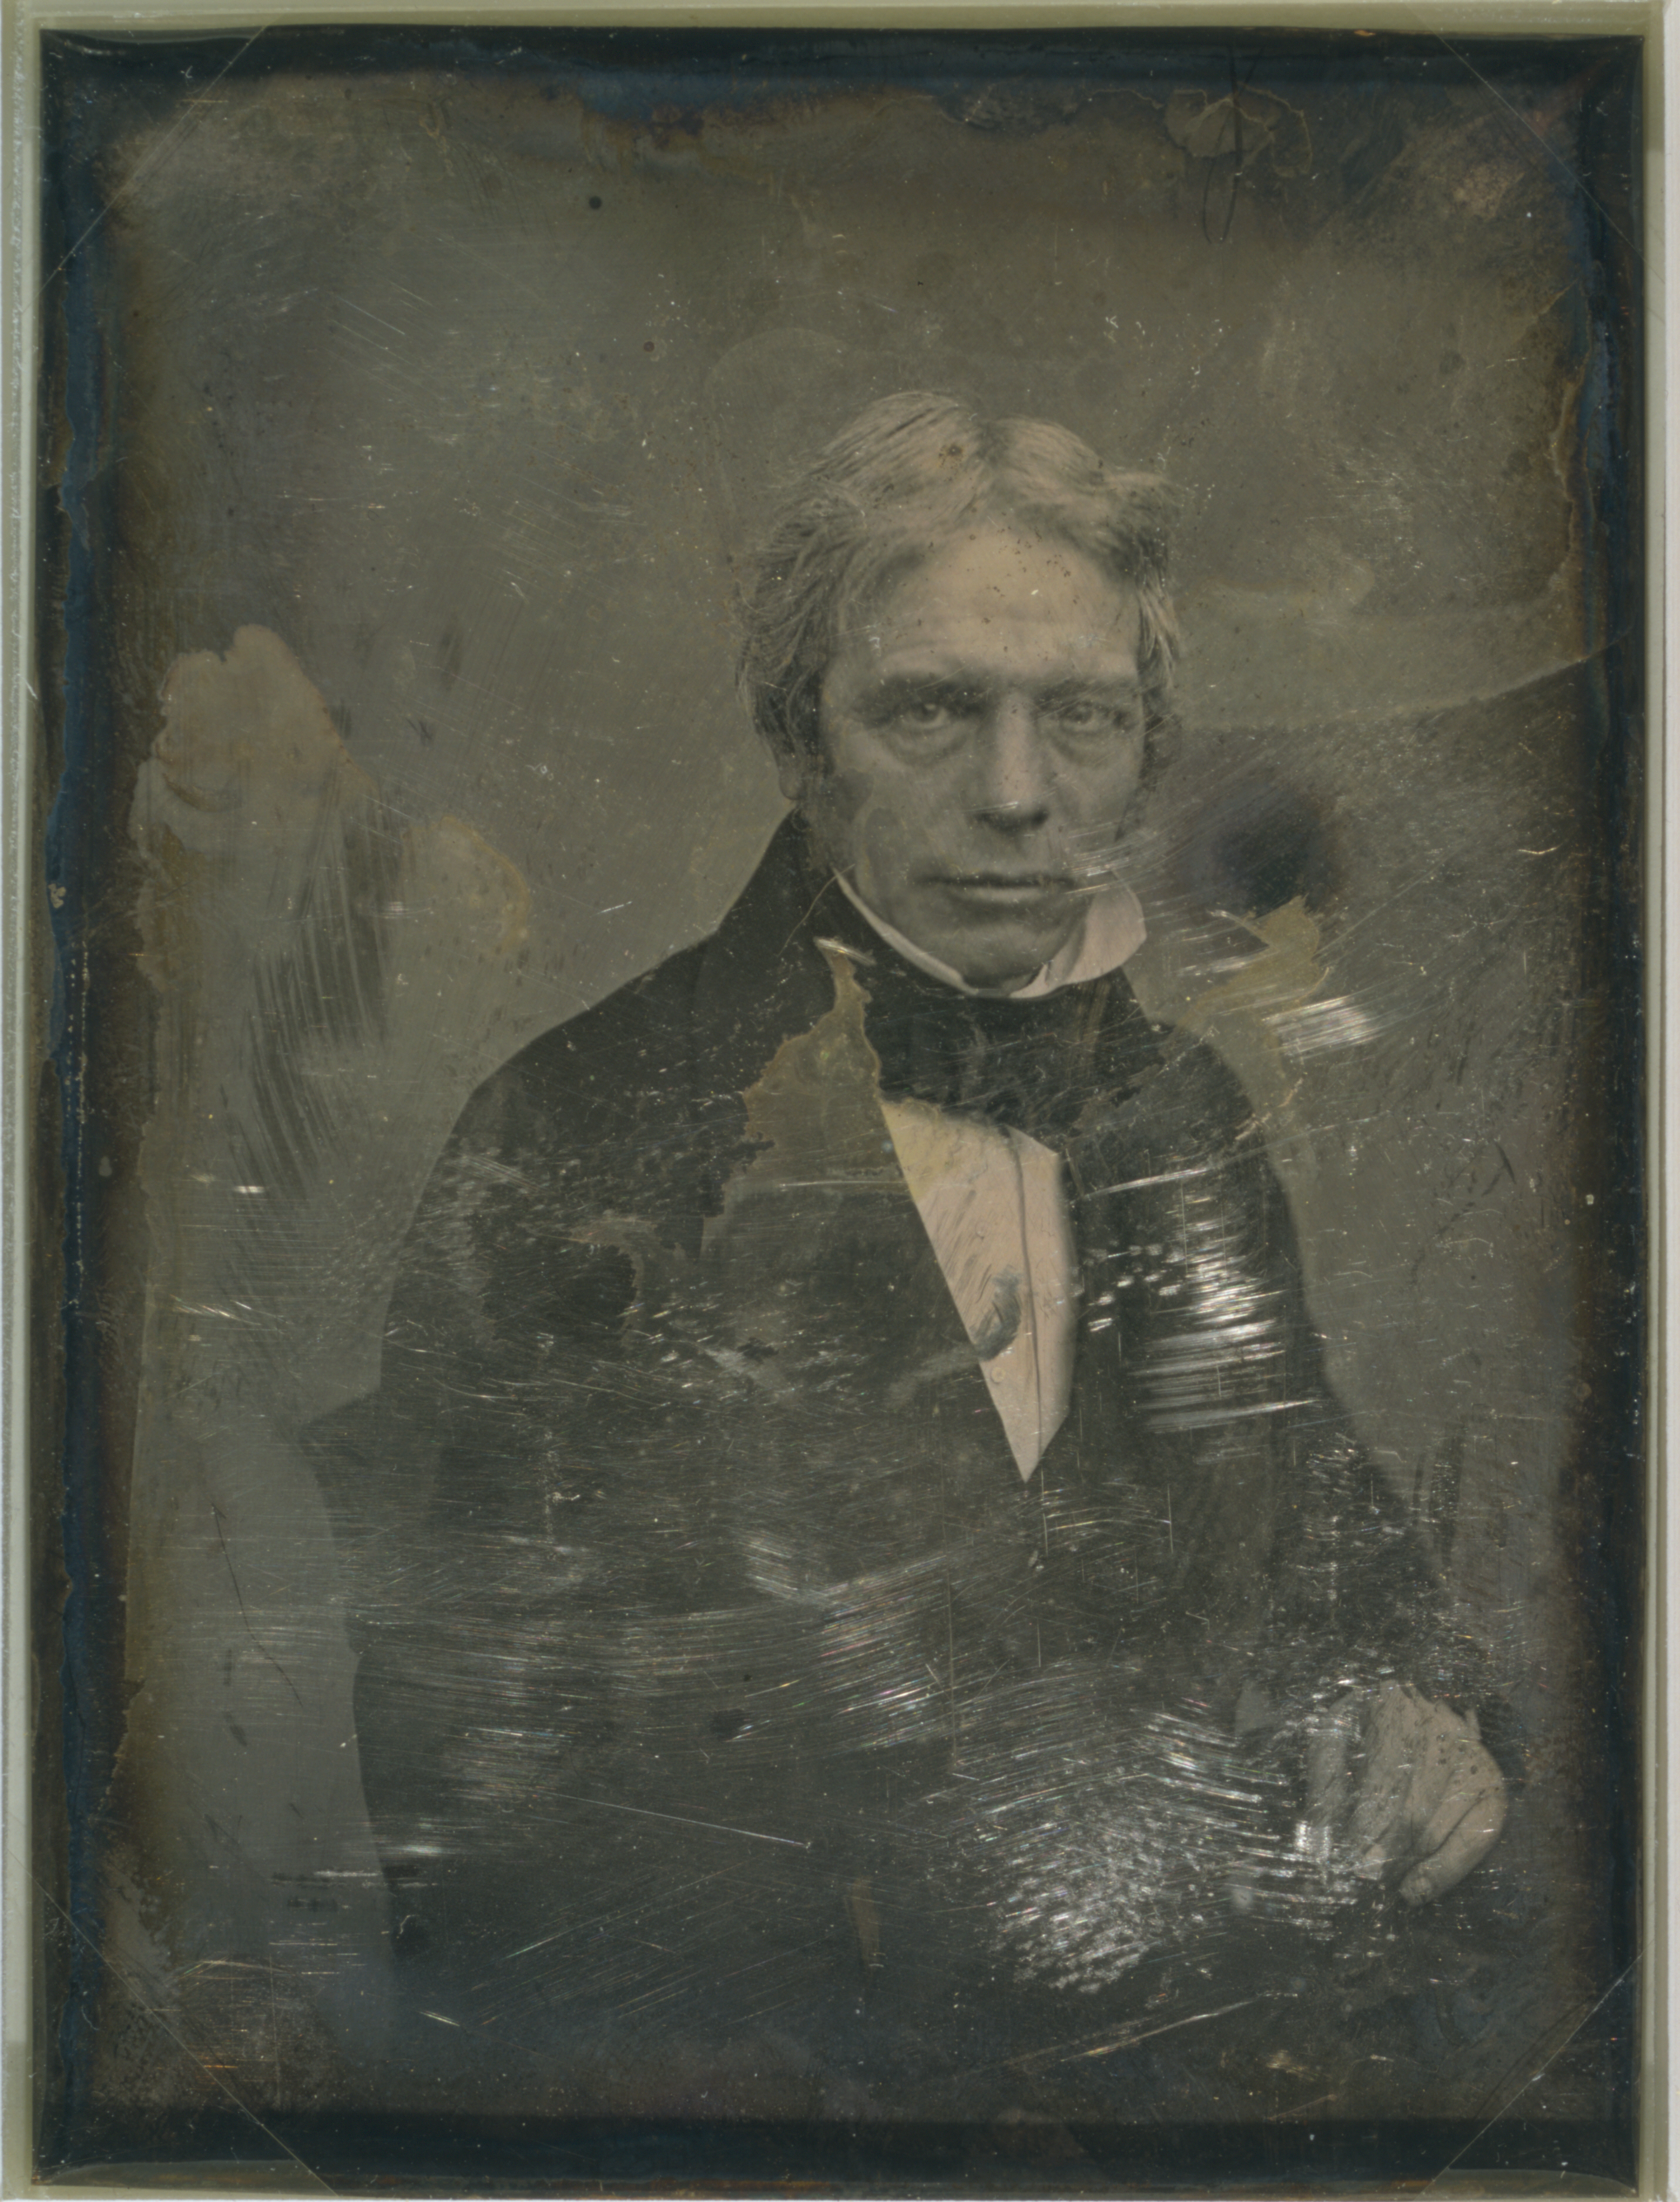 Michael Faraday, by Mathew Brady studio, between 1844 and 1860